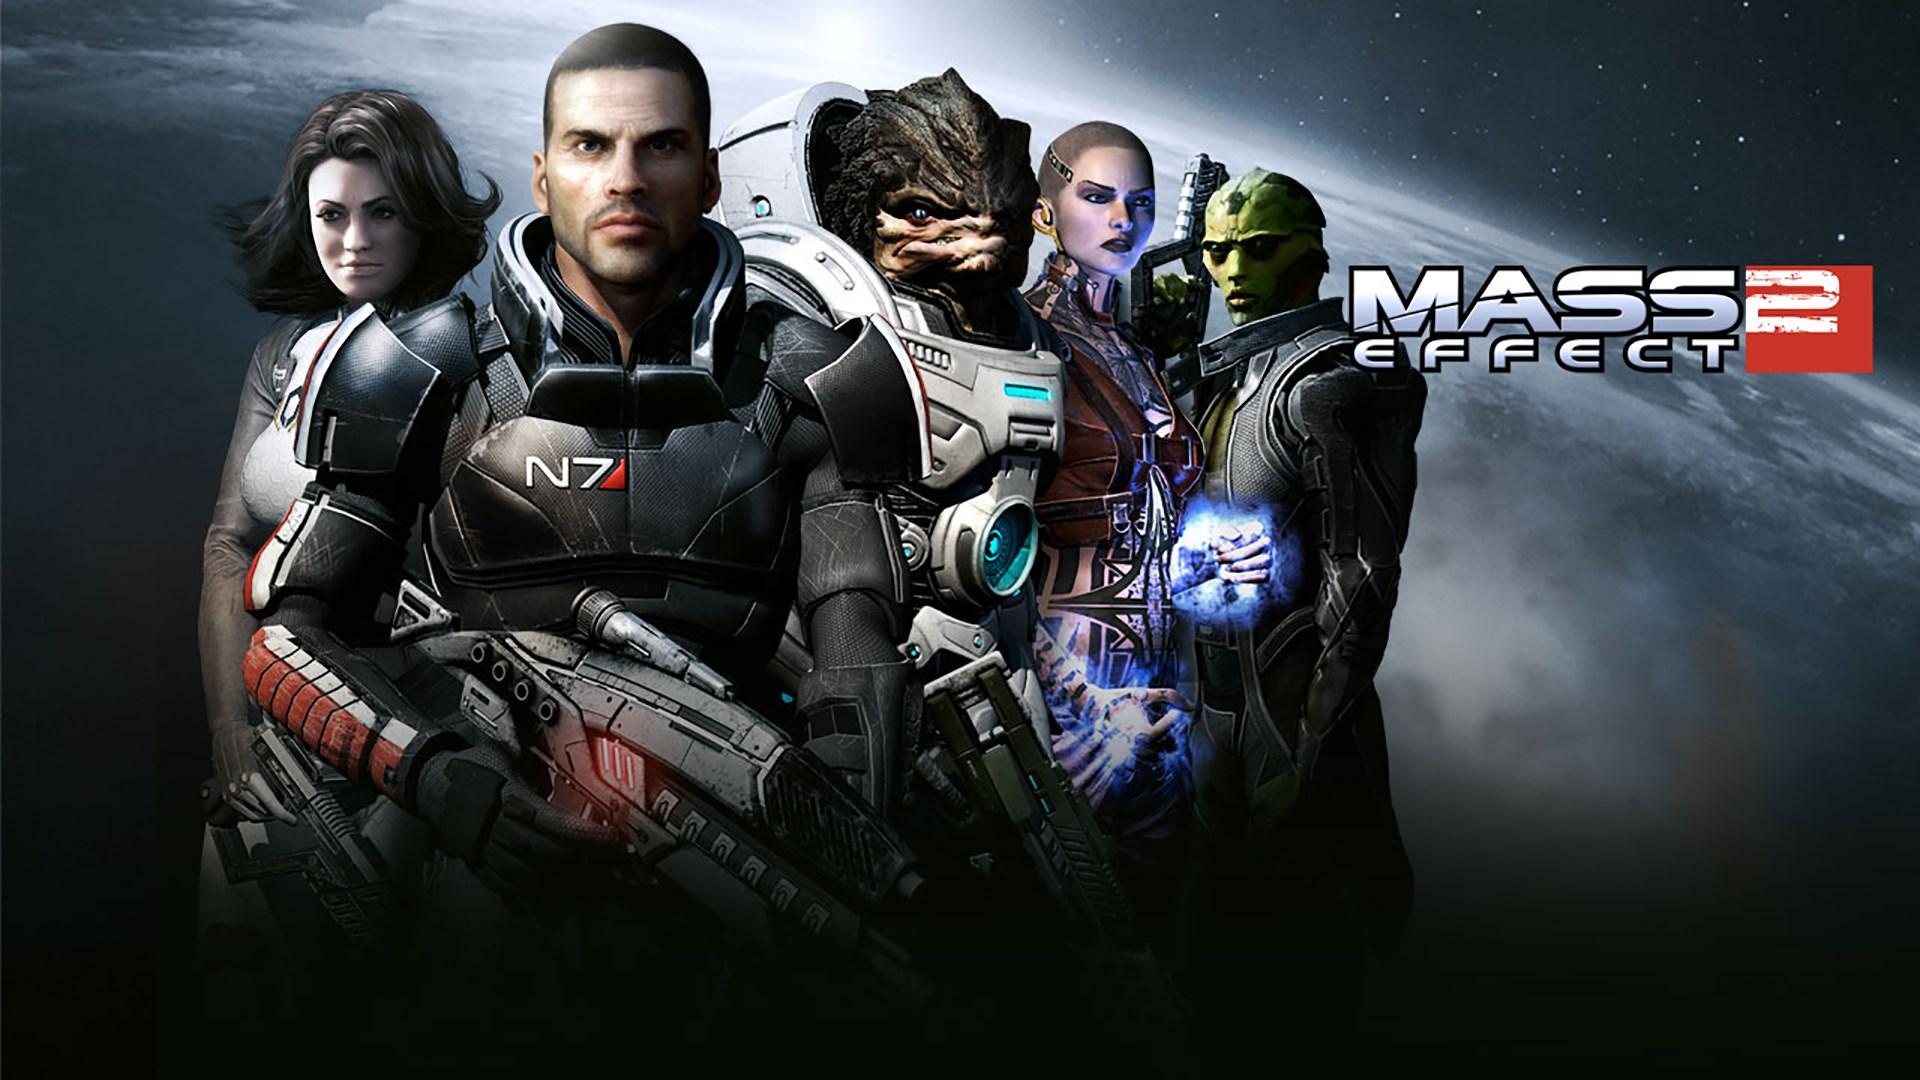 Top 10 Games Like Mass Effect You Must Try in 2020 1